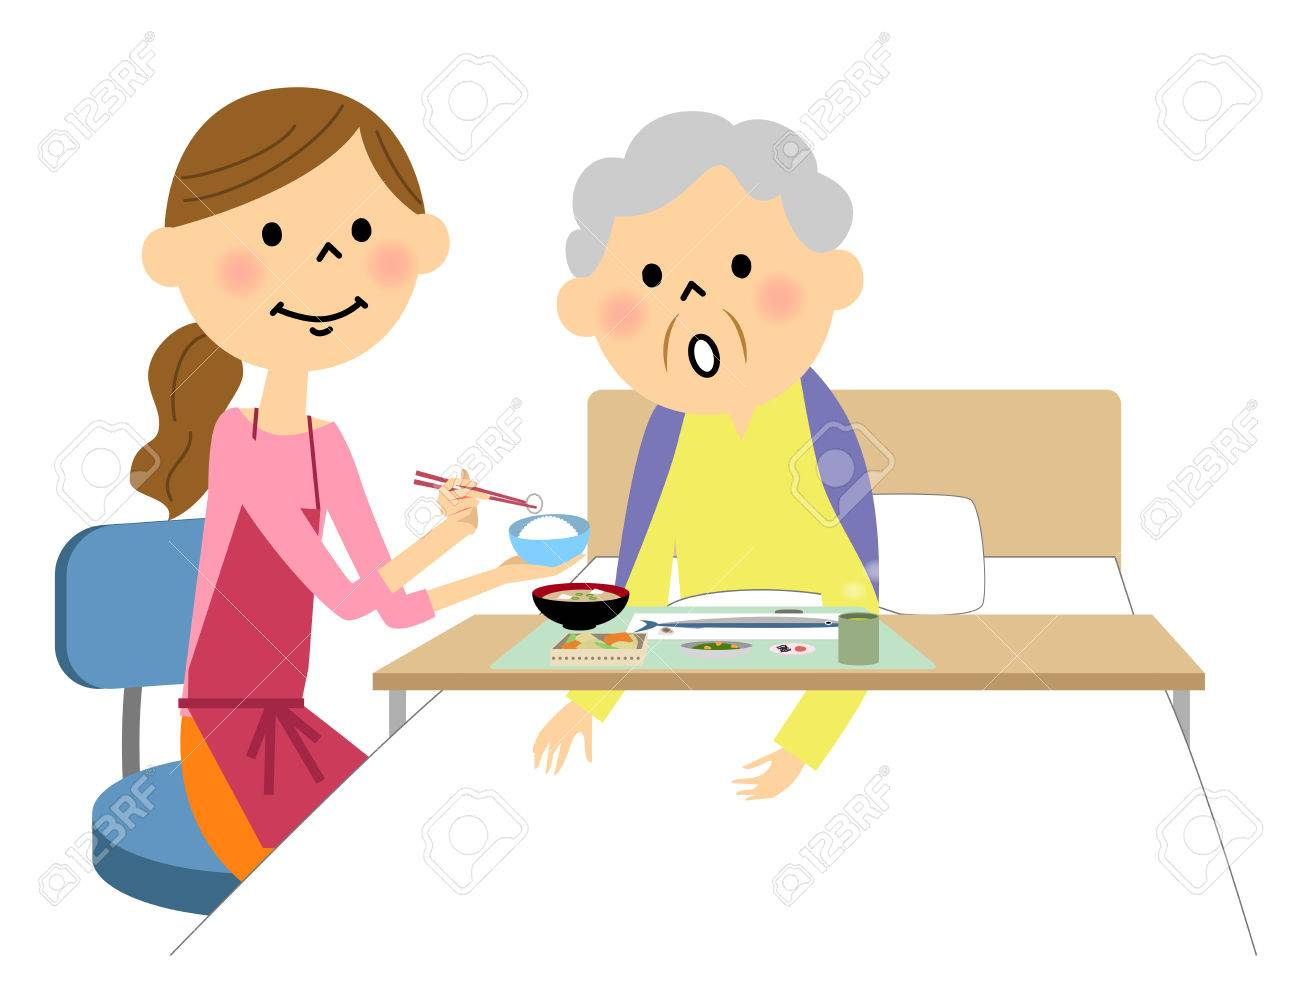 The elderly lady assisted by a meal nurse - 72361592